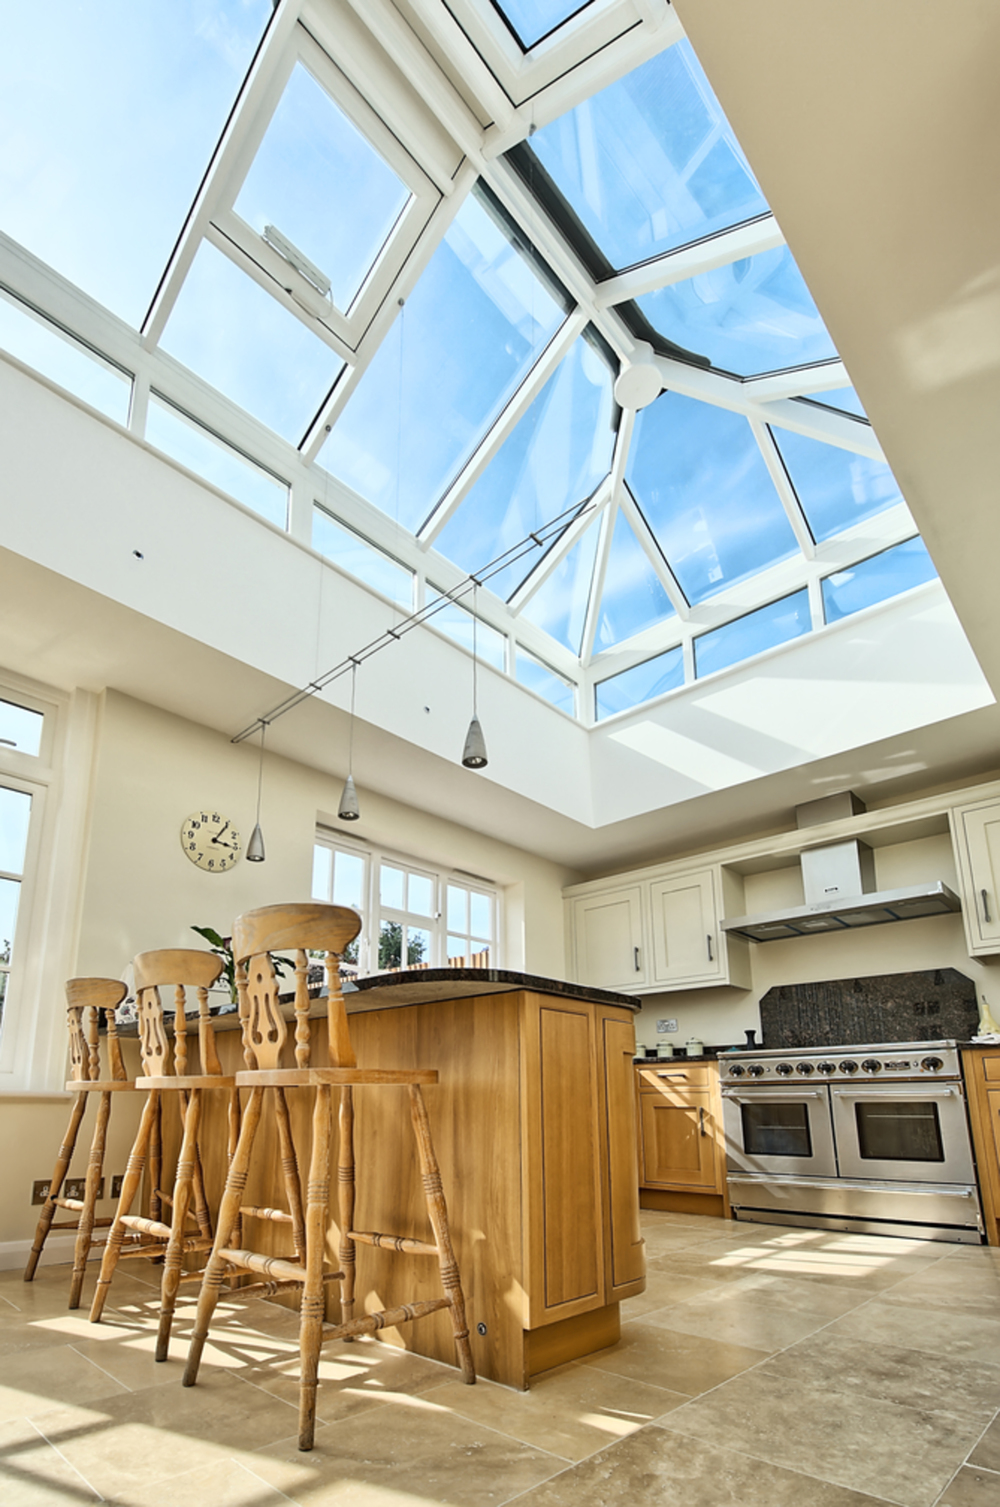 Breakfast bar stools and skylight of a house extension by Harvey Norman Architects St Albans